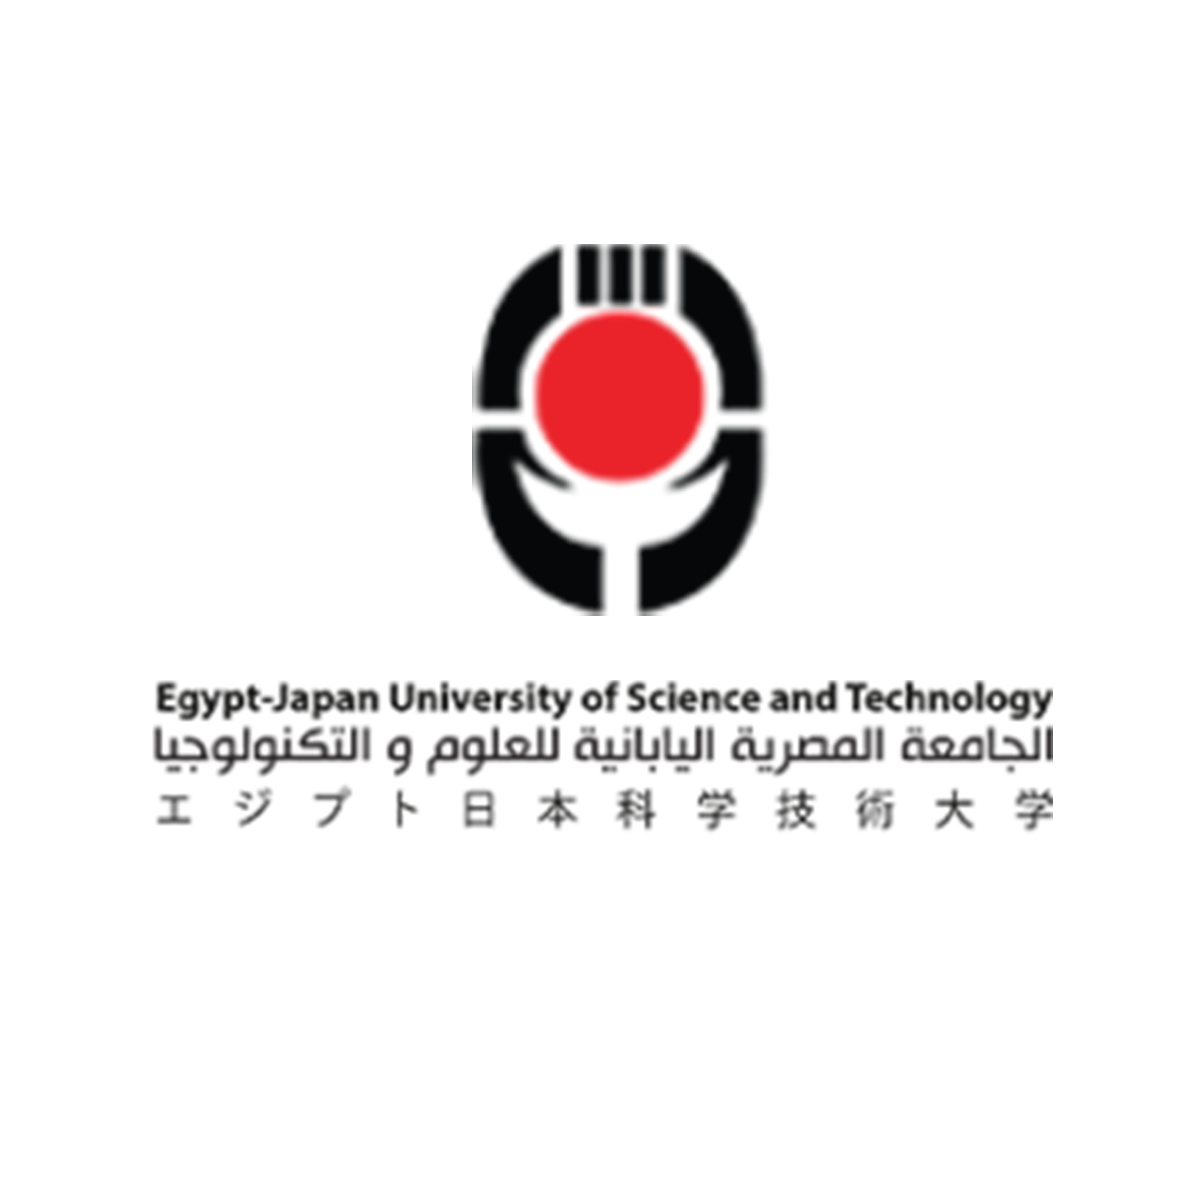 Egypt-Japan University of Science and Technology E-JUST